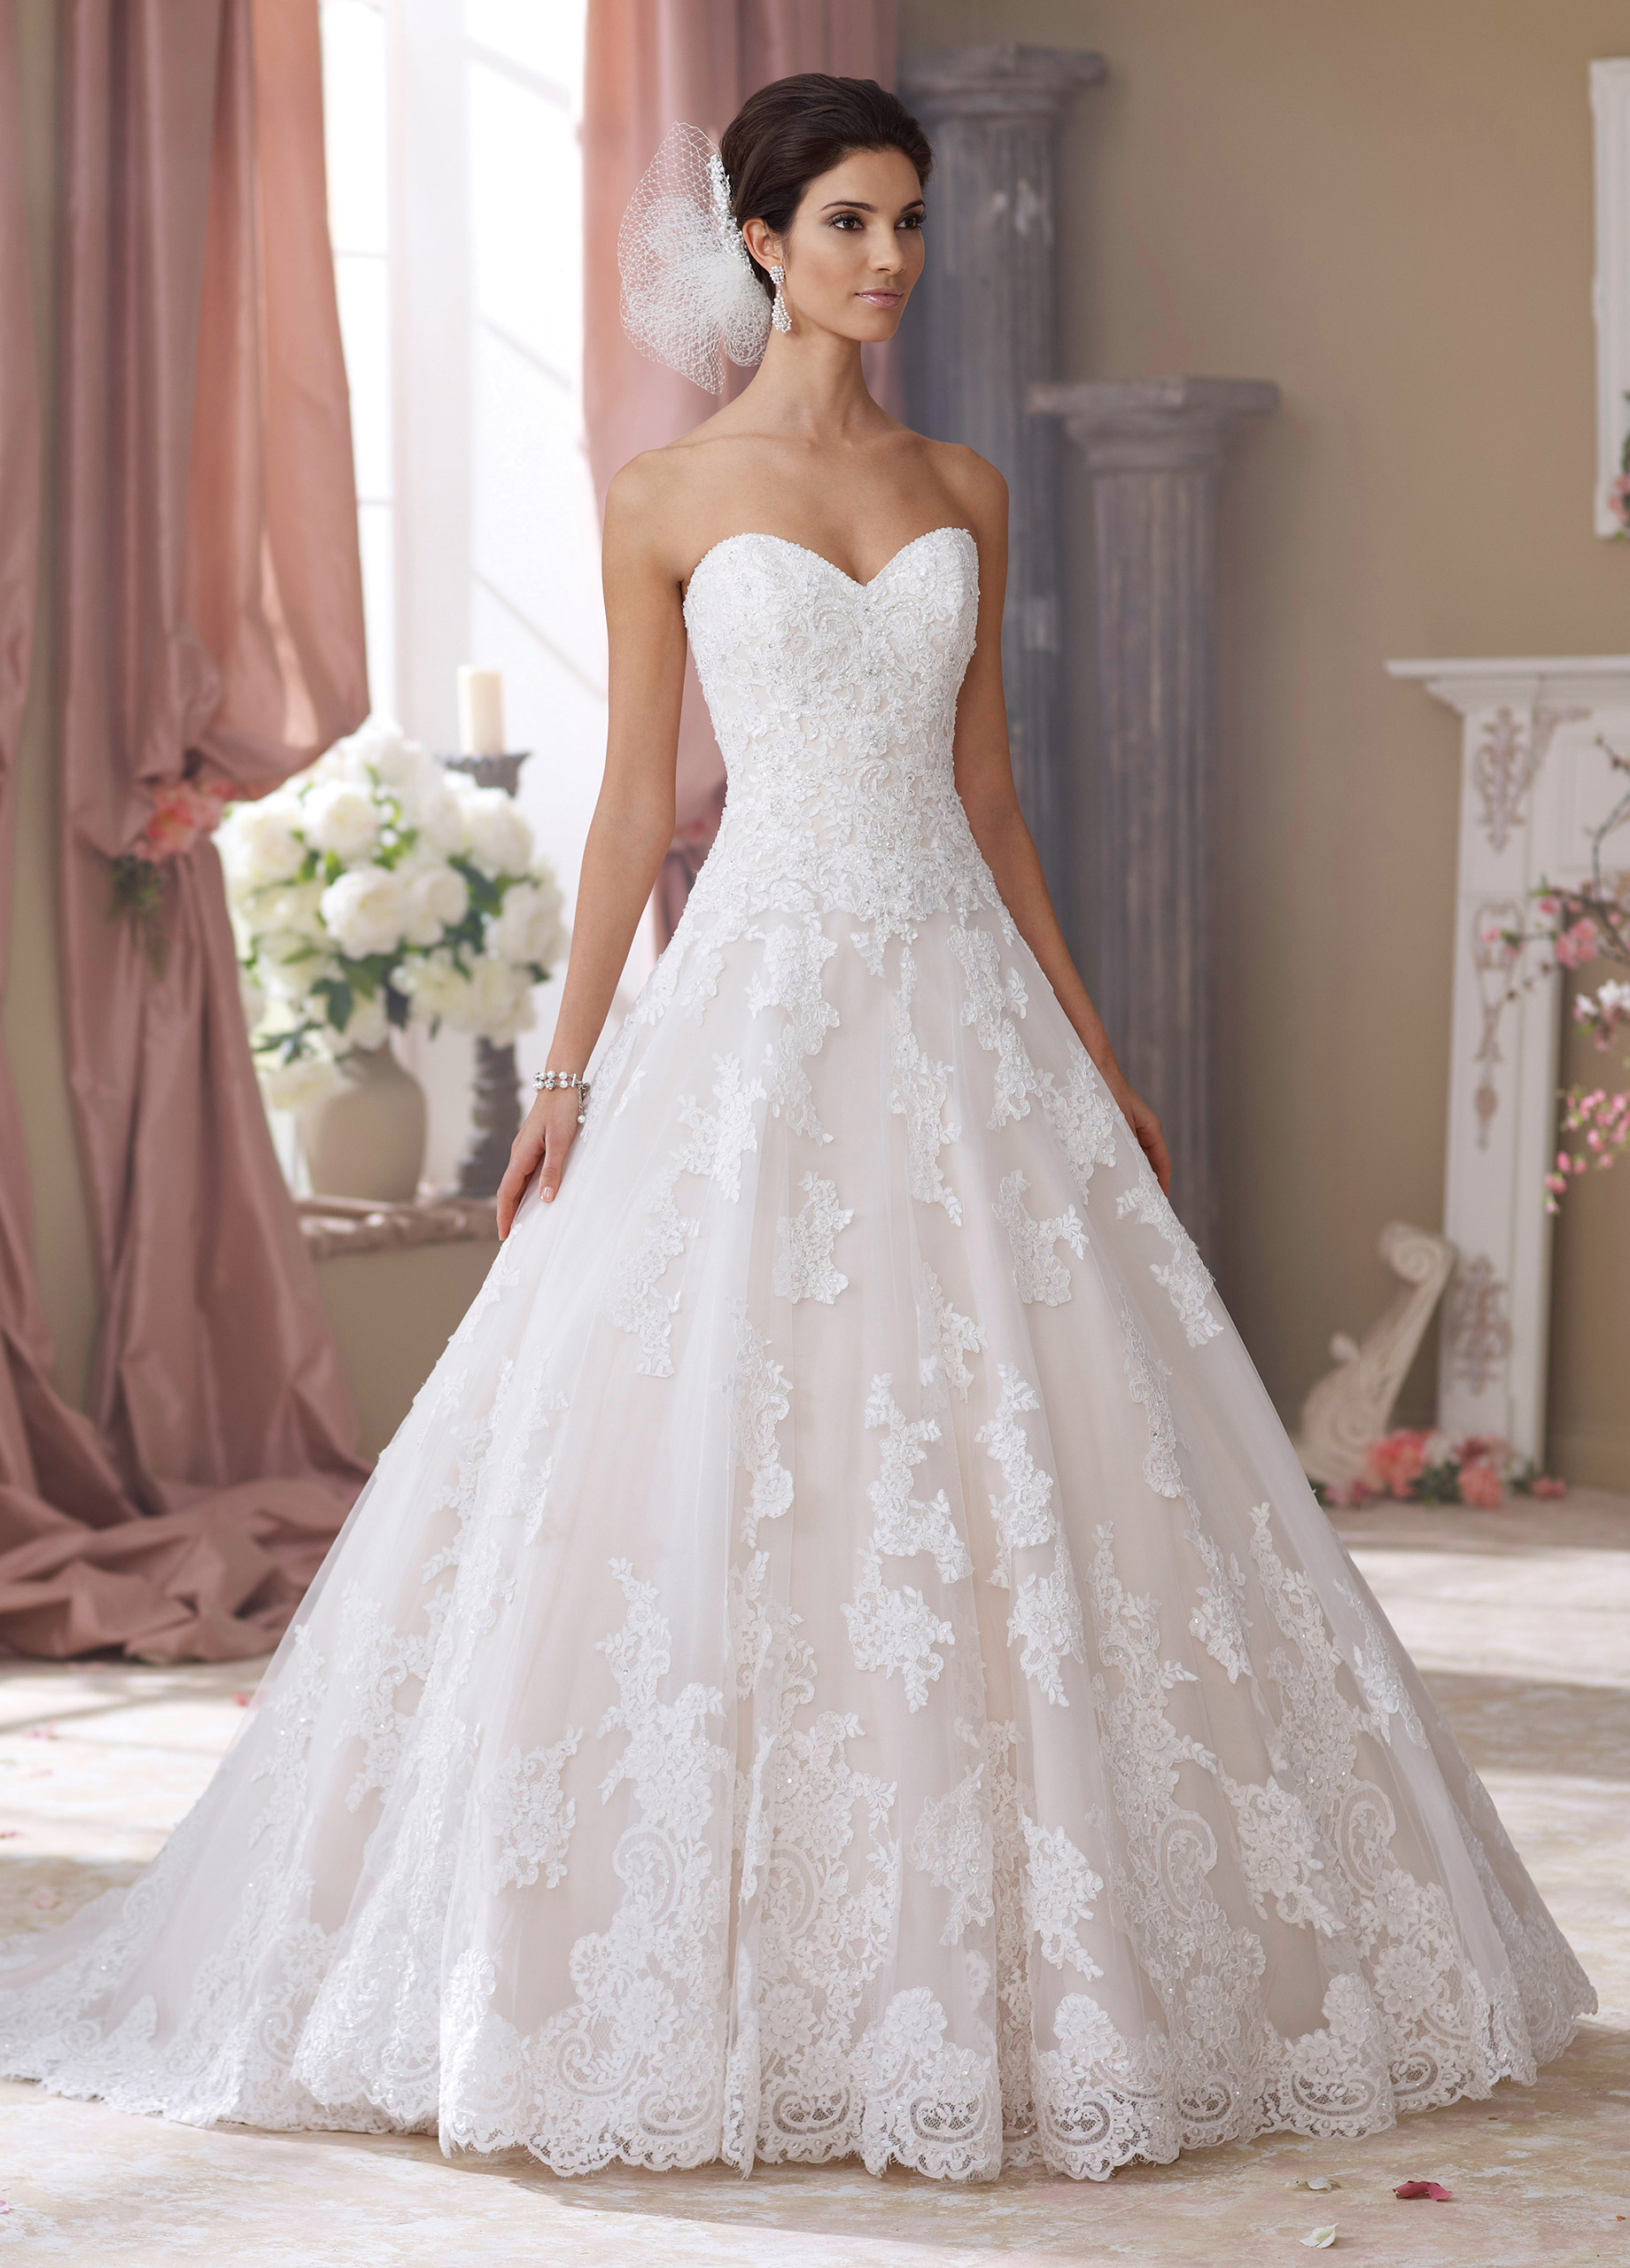 New Mon Cheri Bridal Dresses 2020